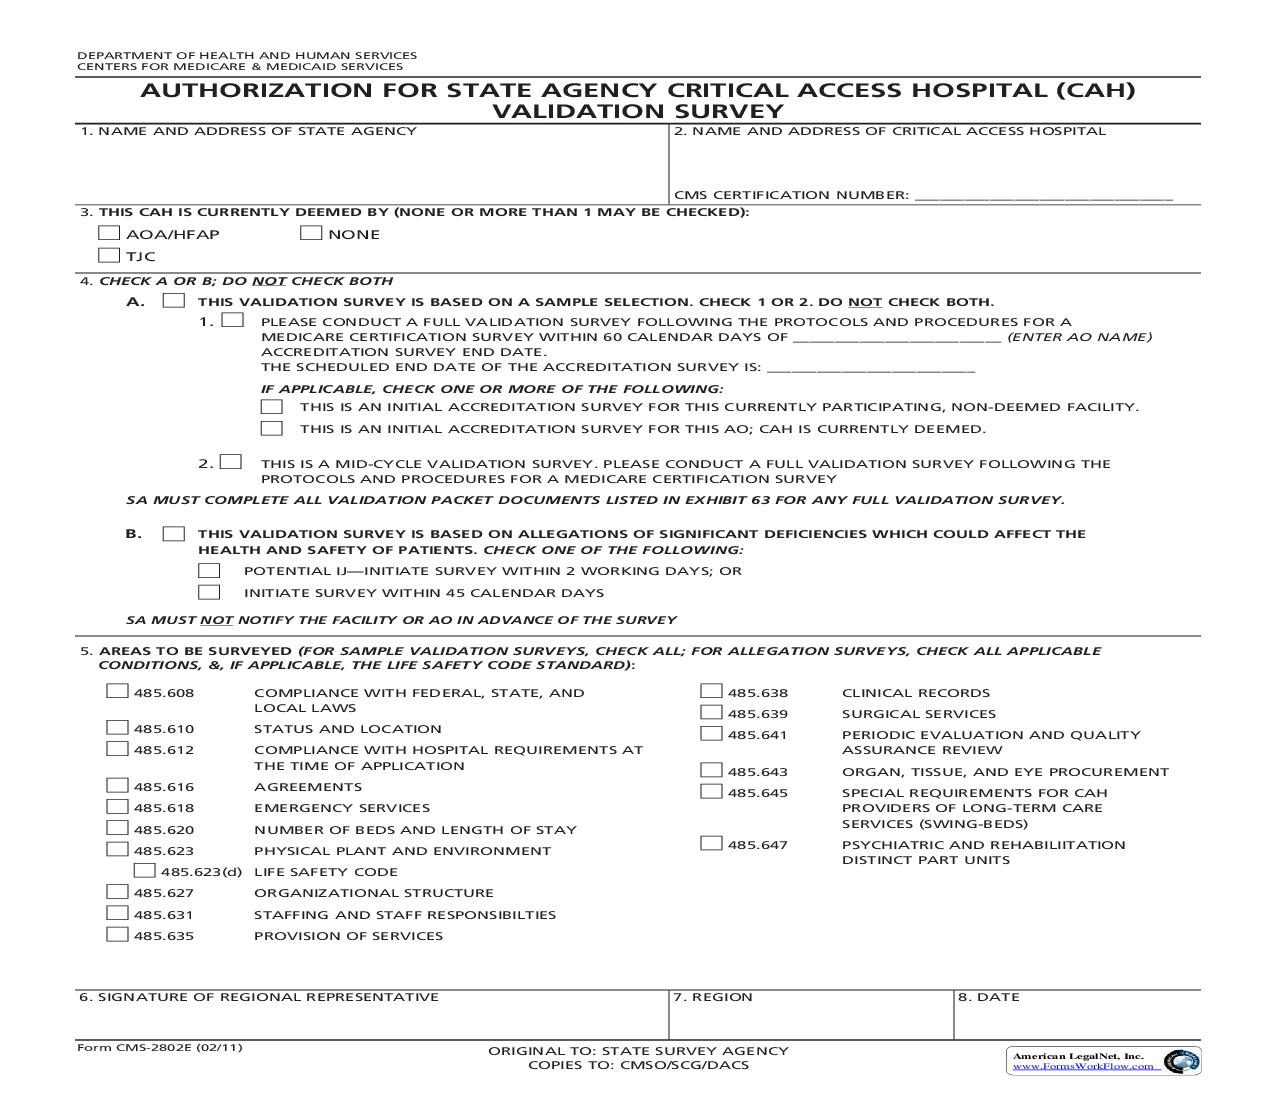 Request For Validation Of Accreditation For Critical Access Hospital Survey {CMS-2802E} | Pdf Fpdf Doc Docx | Official Federal Forms